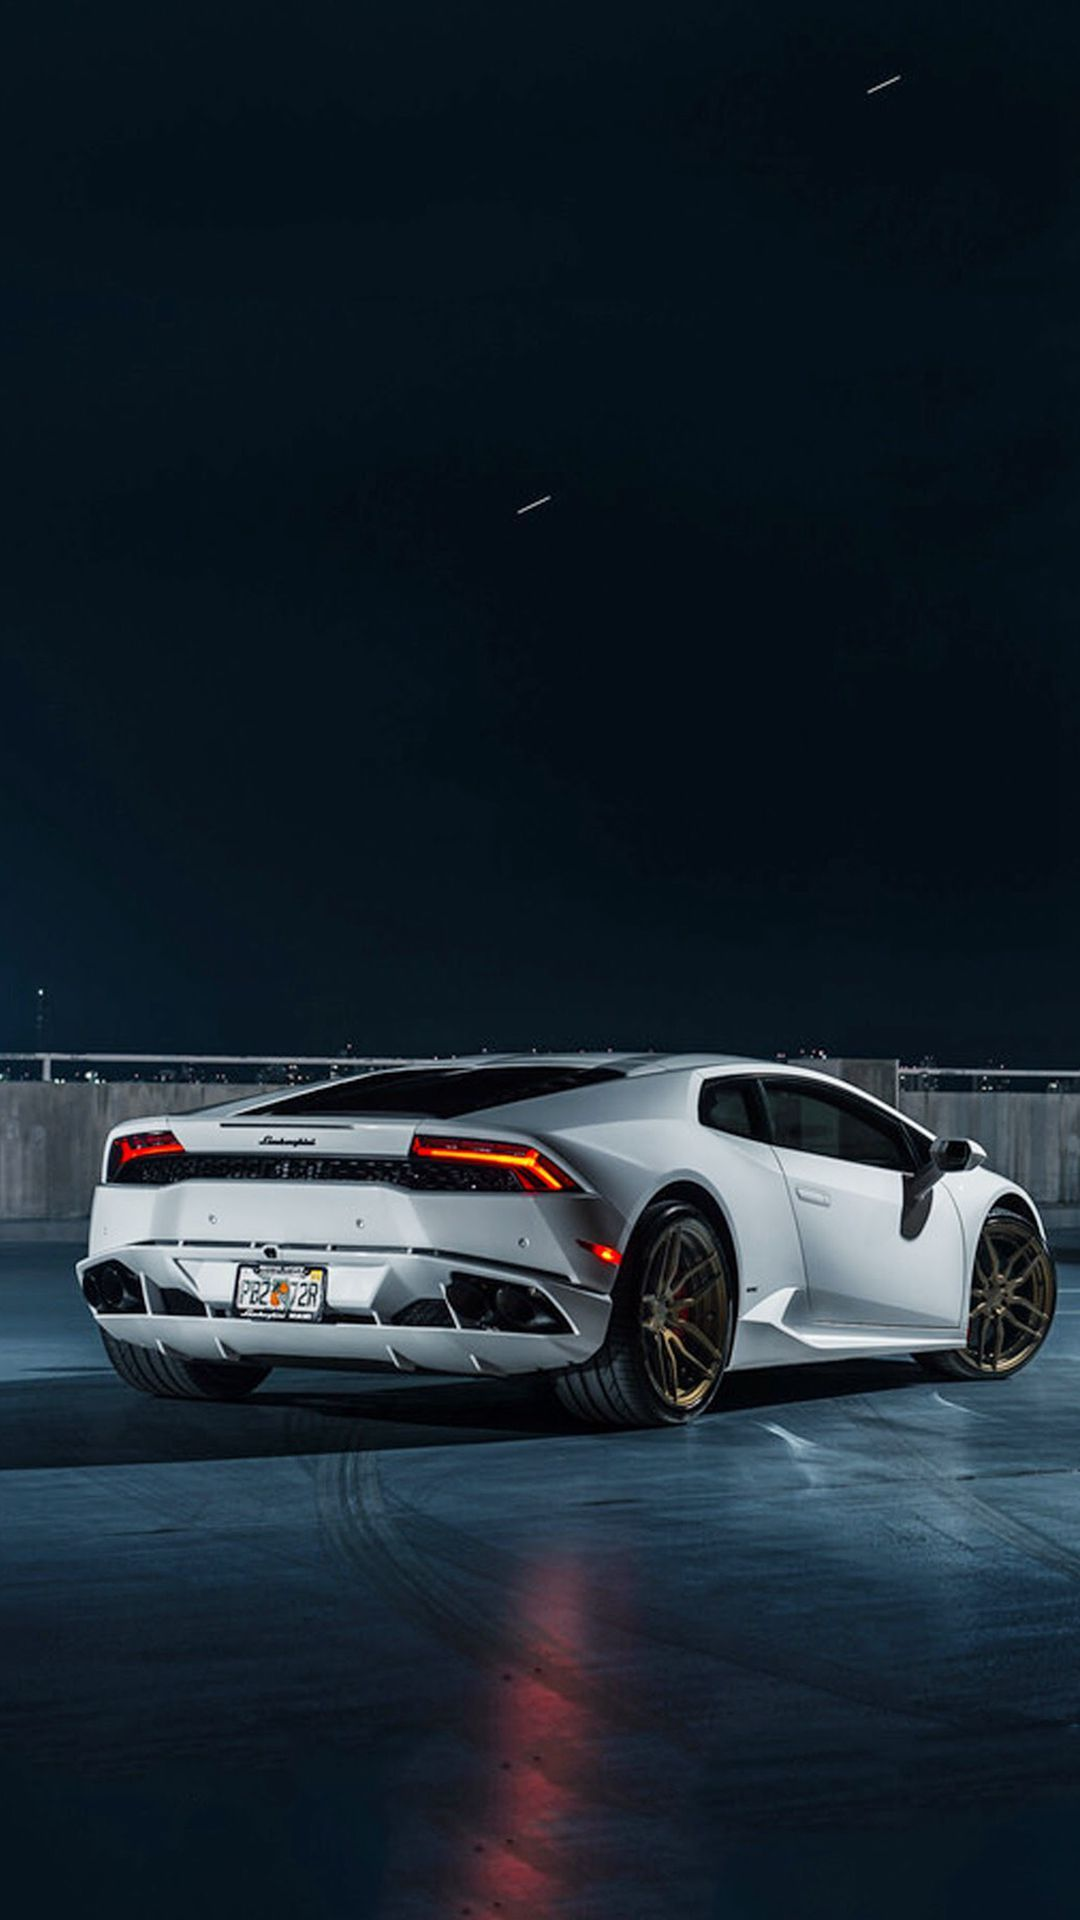 Lamborghini Huracan Adv005mv2cs Iphone 6 Plus Wallpaper Iphone